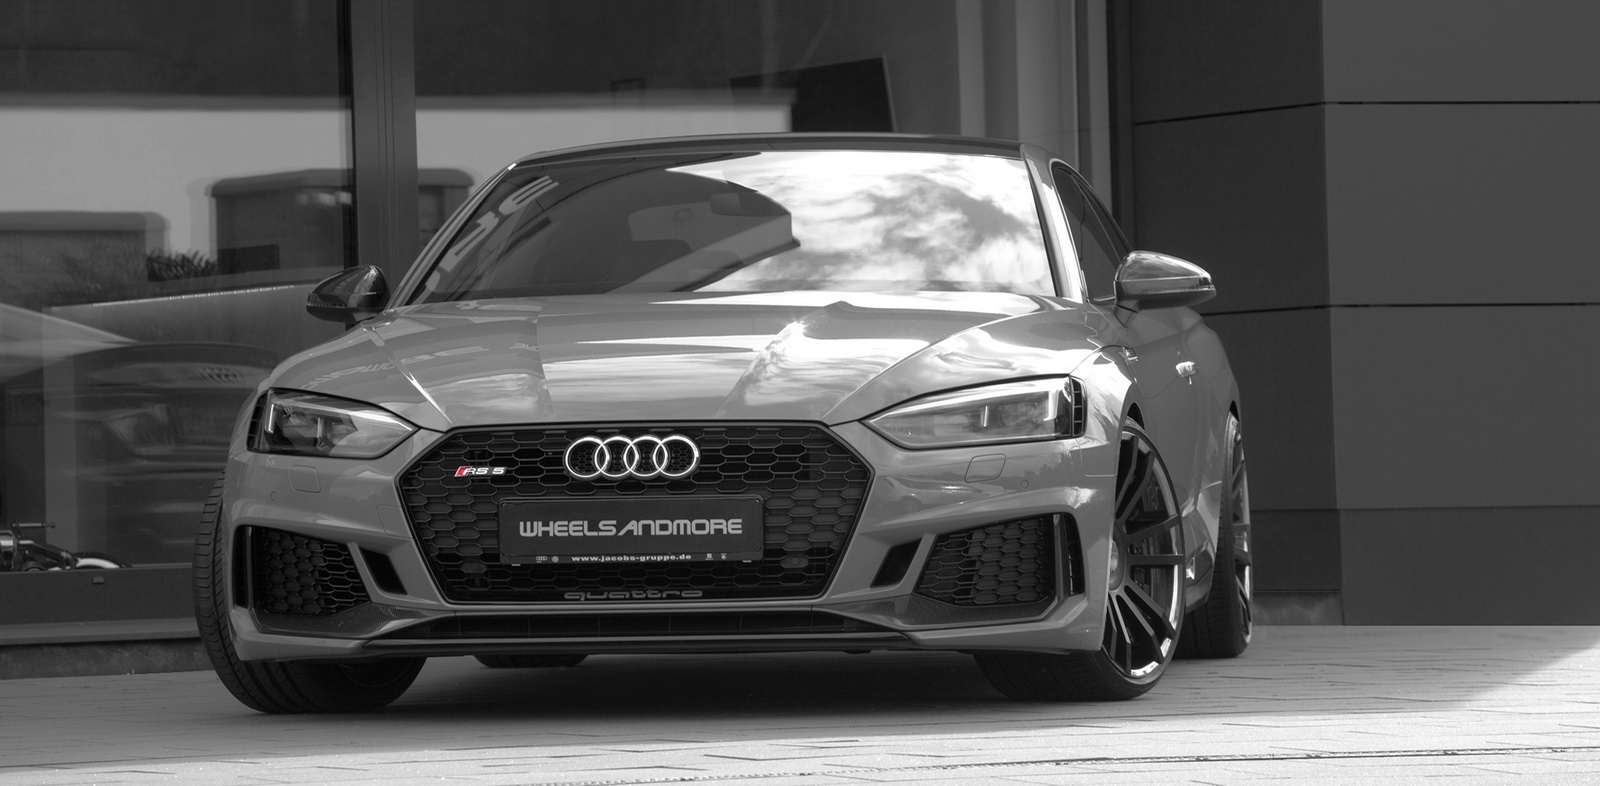 2018-audi-rs5-coupe-wheelsandmore-tuning-8